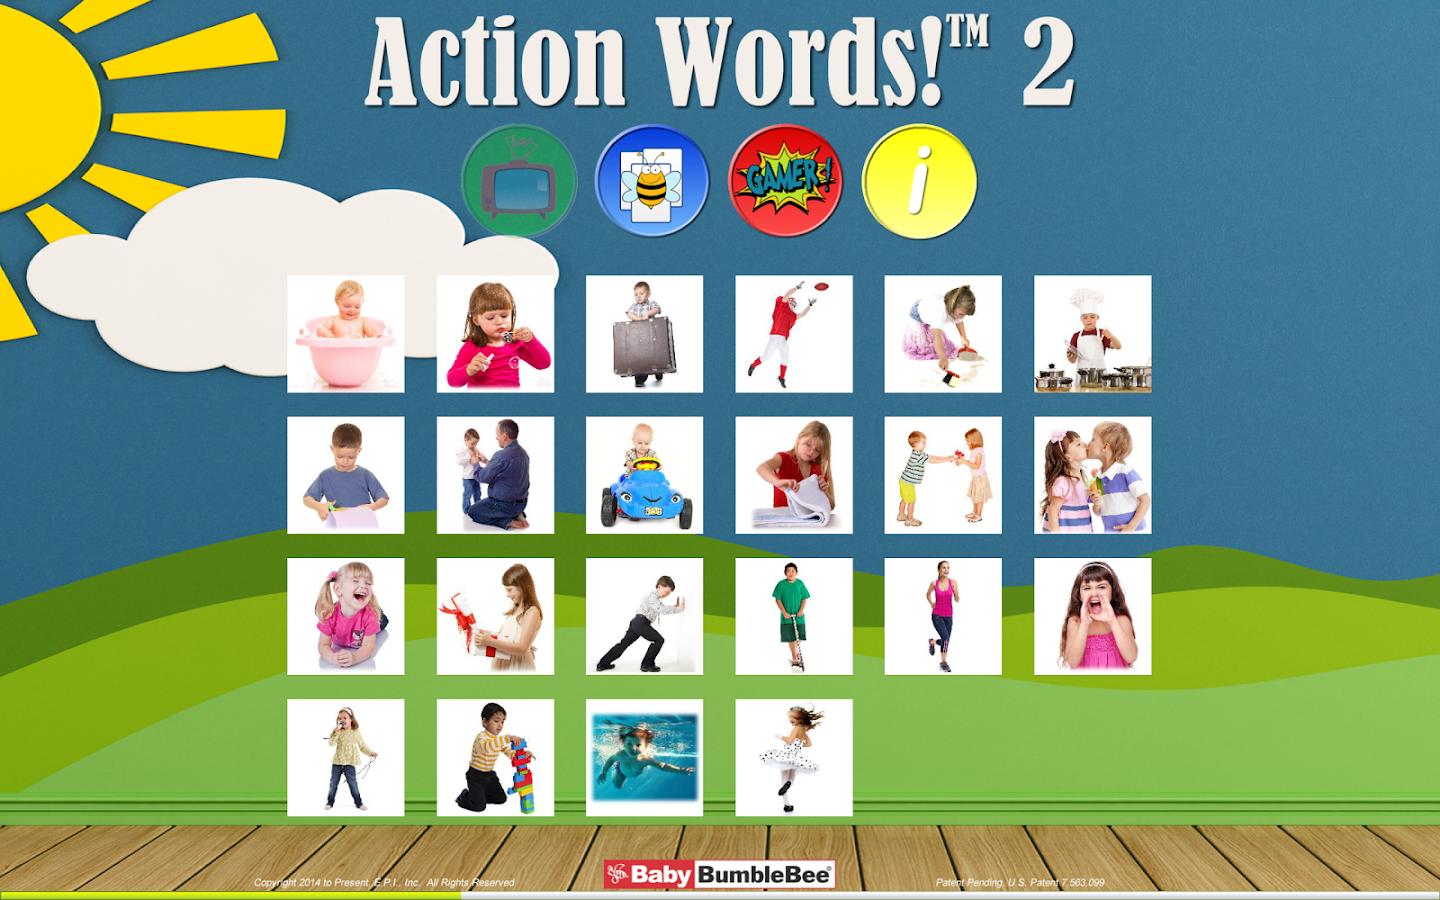 action words flashcards android apps on google play action words 2 flashcards screenshot